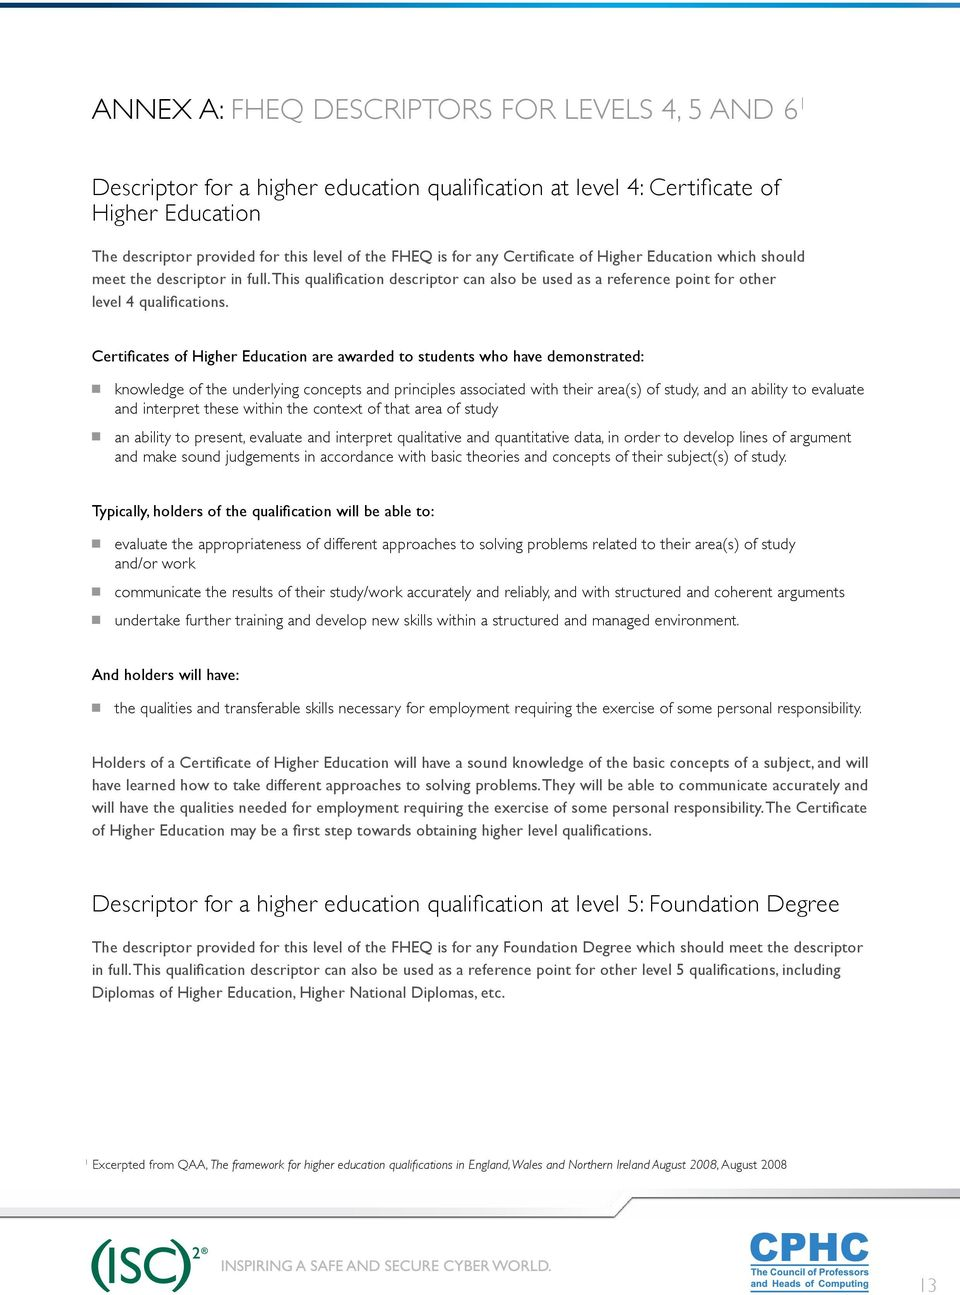 Certificates of Higher Education are awarded to students who have demonstrated: Q Q knowledge of the underlying concepts and principles associated with their area(s) of study, and an ability to